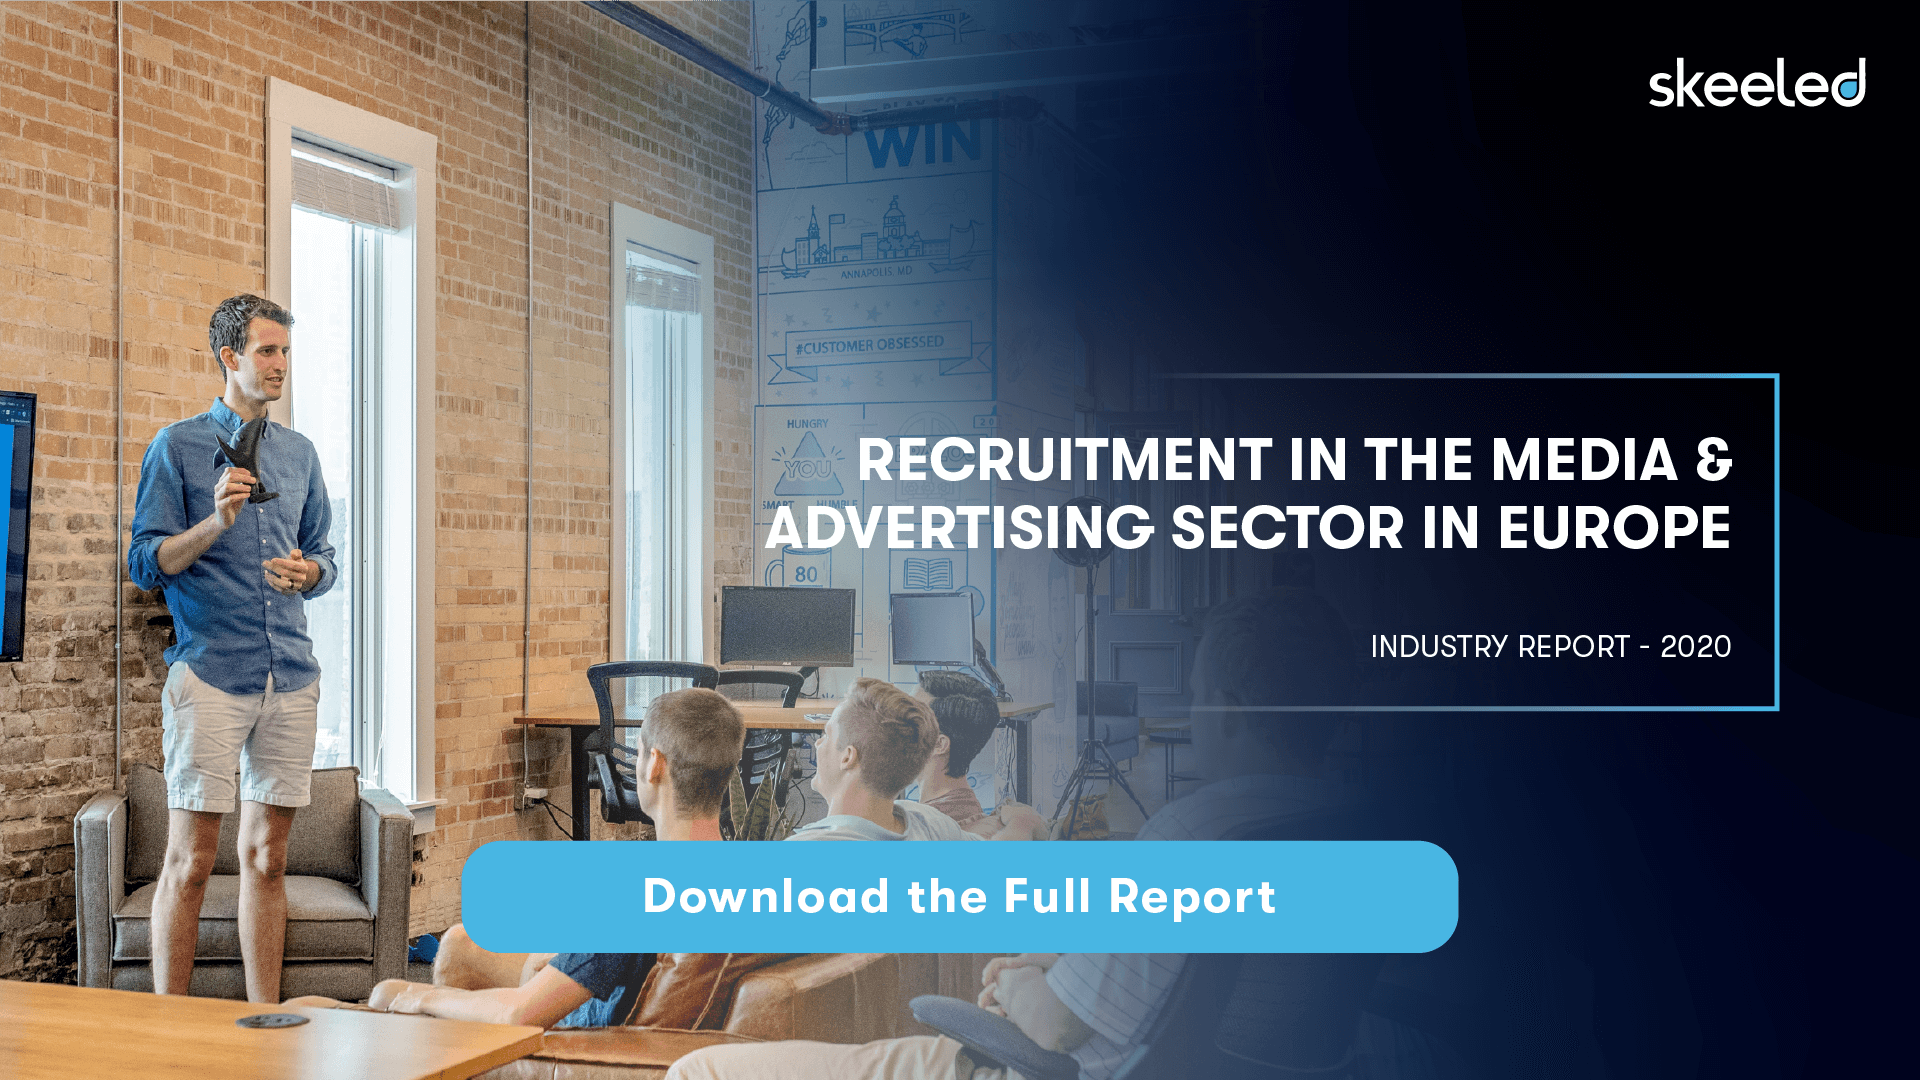 Industry Report: Recruitment in the Media & Advertising Sector in Europe